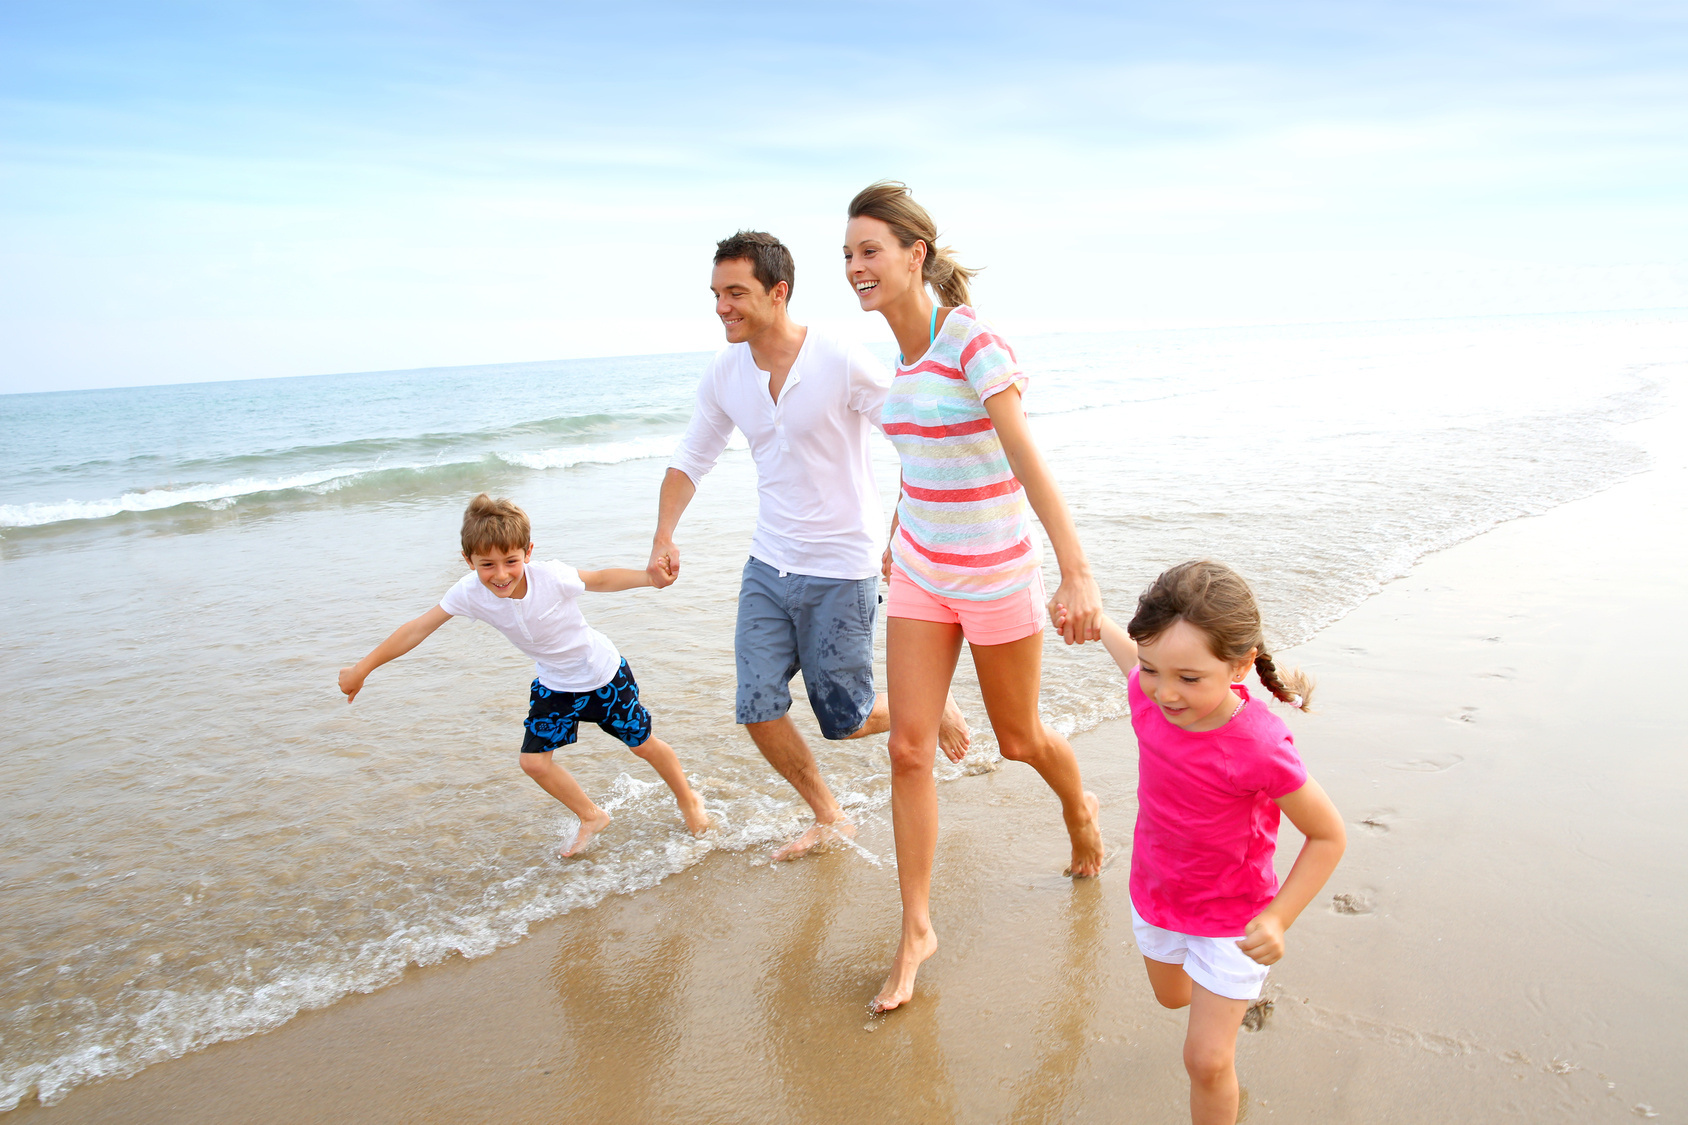 Beach familly pic 91